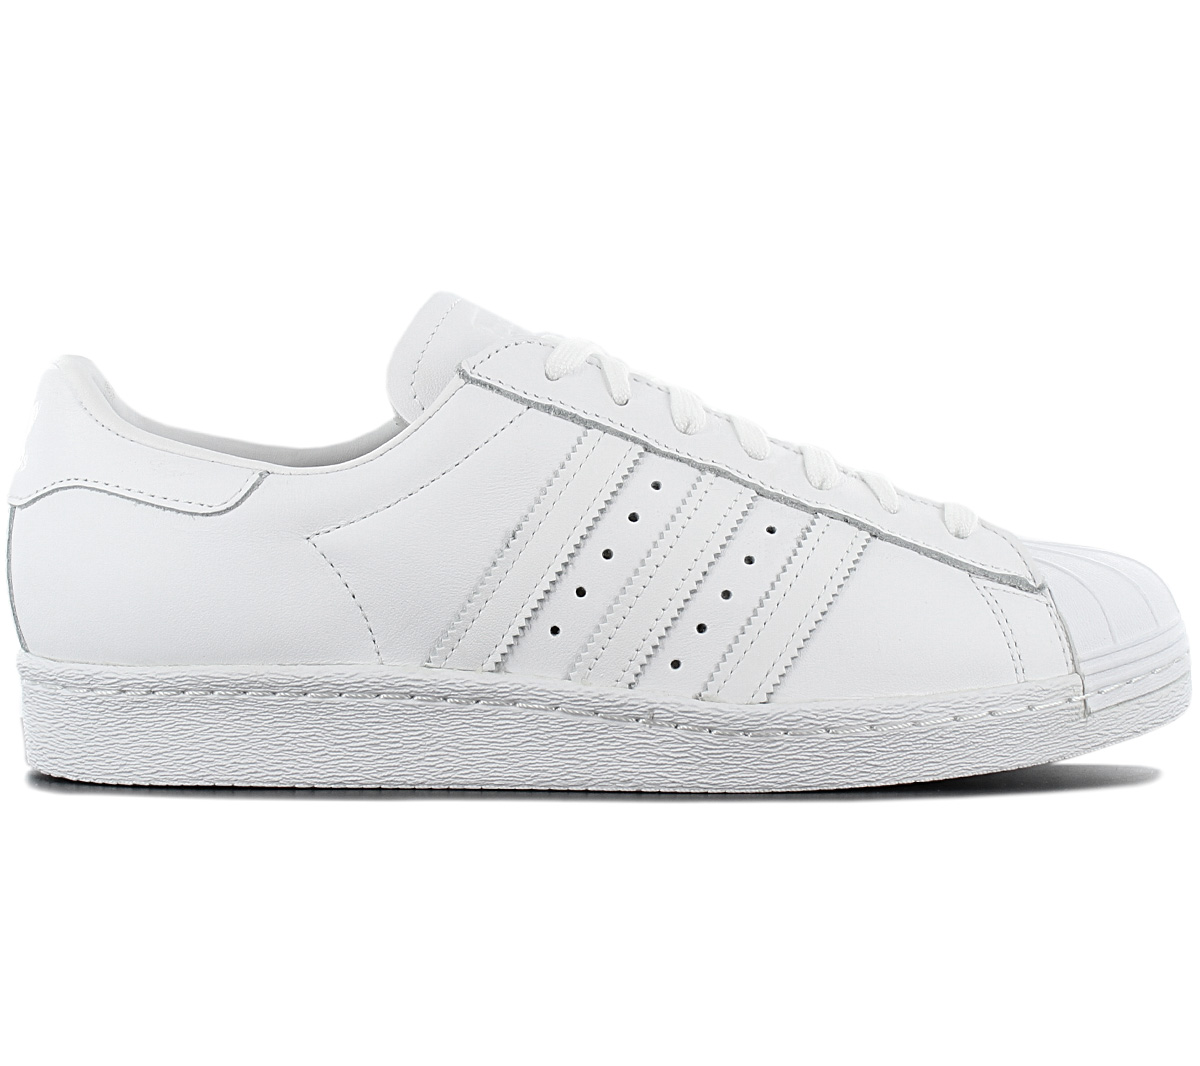 the latest fc861 513f9 Adidas Originals Superstar 80s Men s Sneakers Shoes S79443 Leather ...